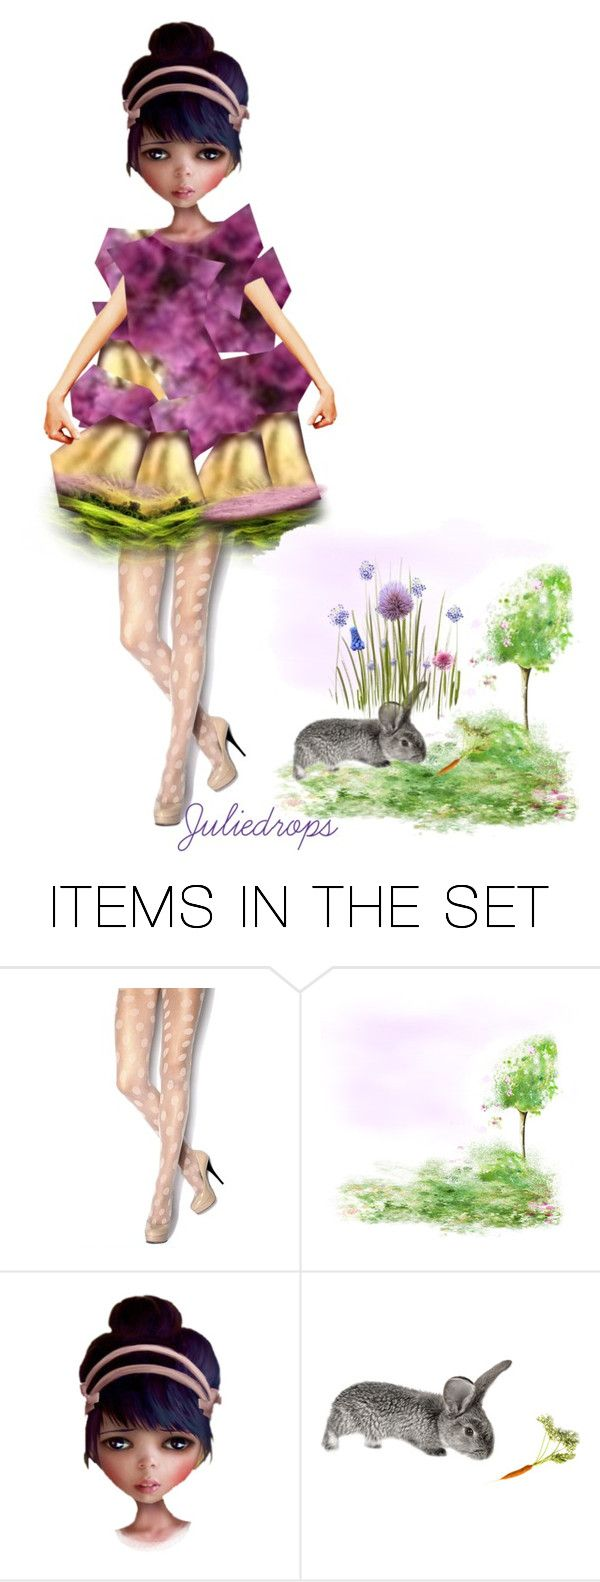 """Posy Pop..."" by julidrops ❤ liked on Polyvore featuring art"